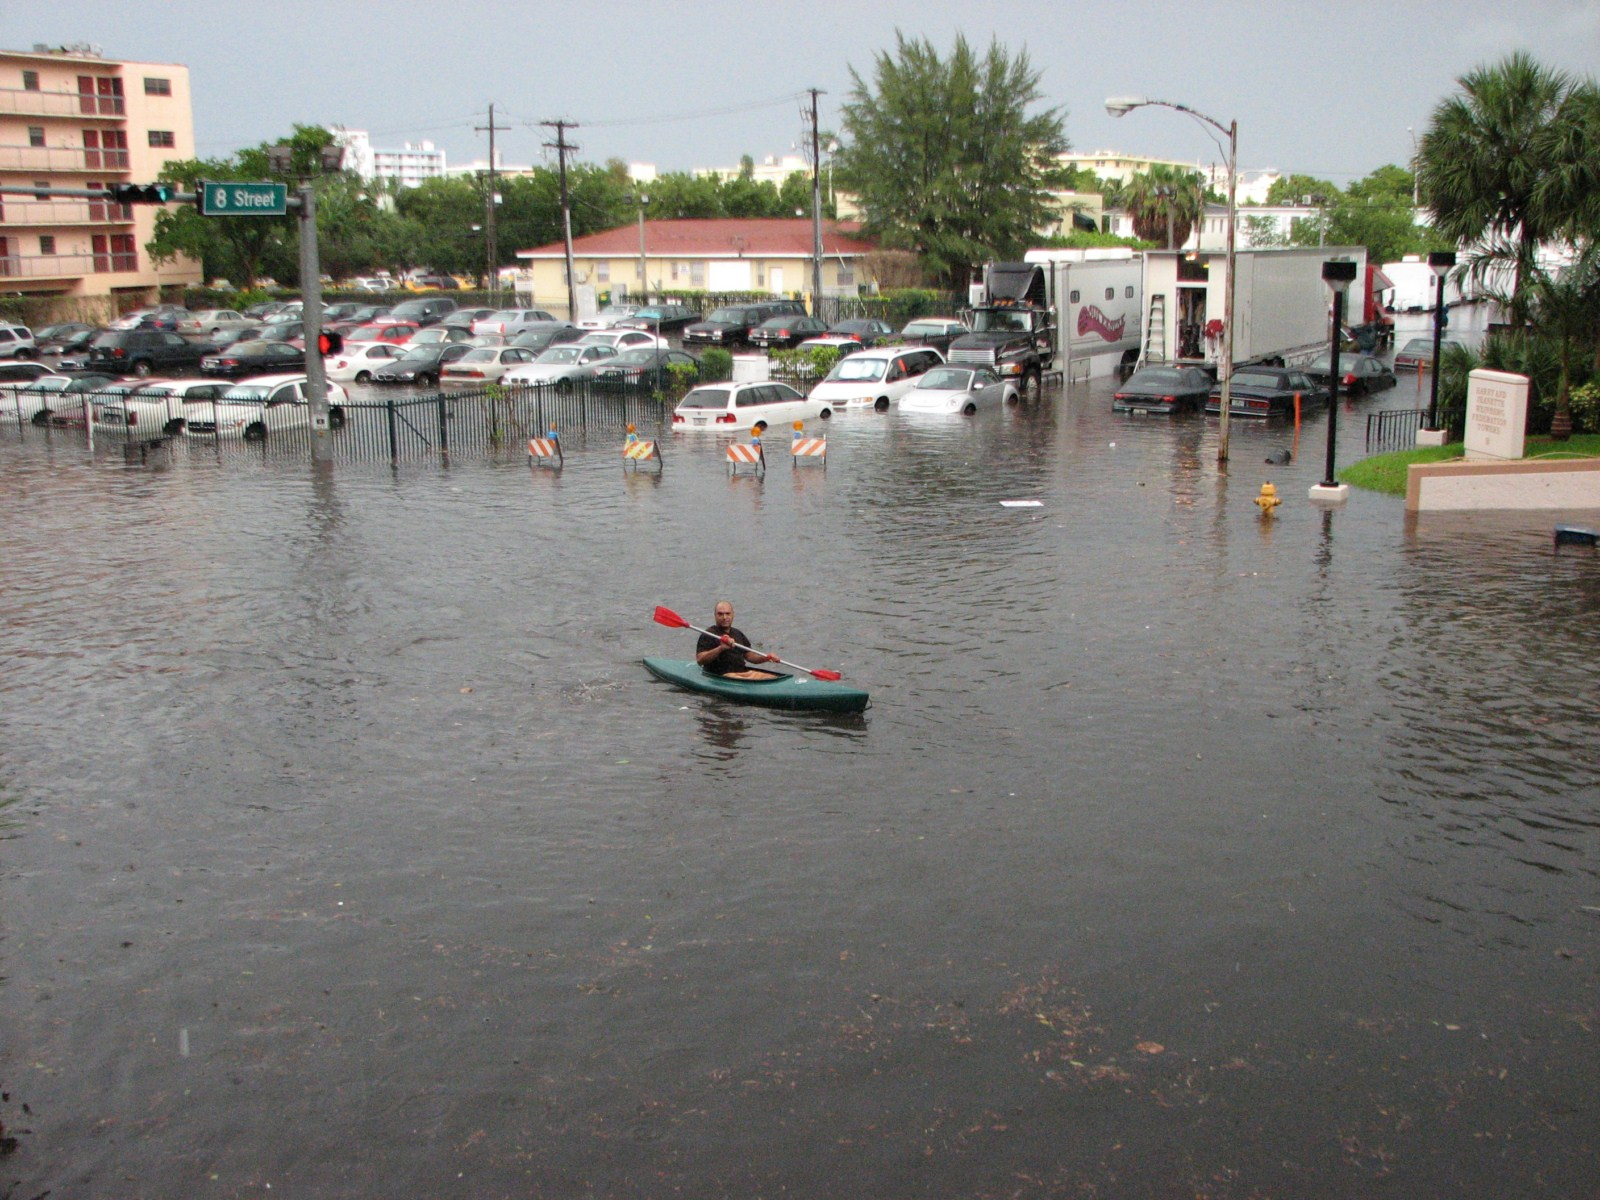 South Floridians want millions from federal government to adapt to rising seas